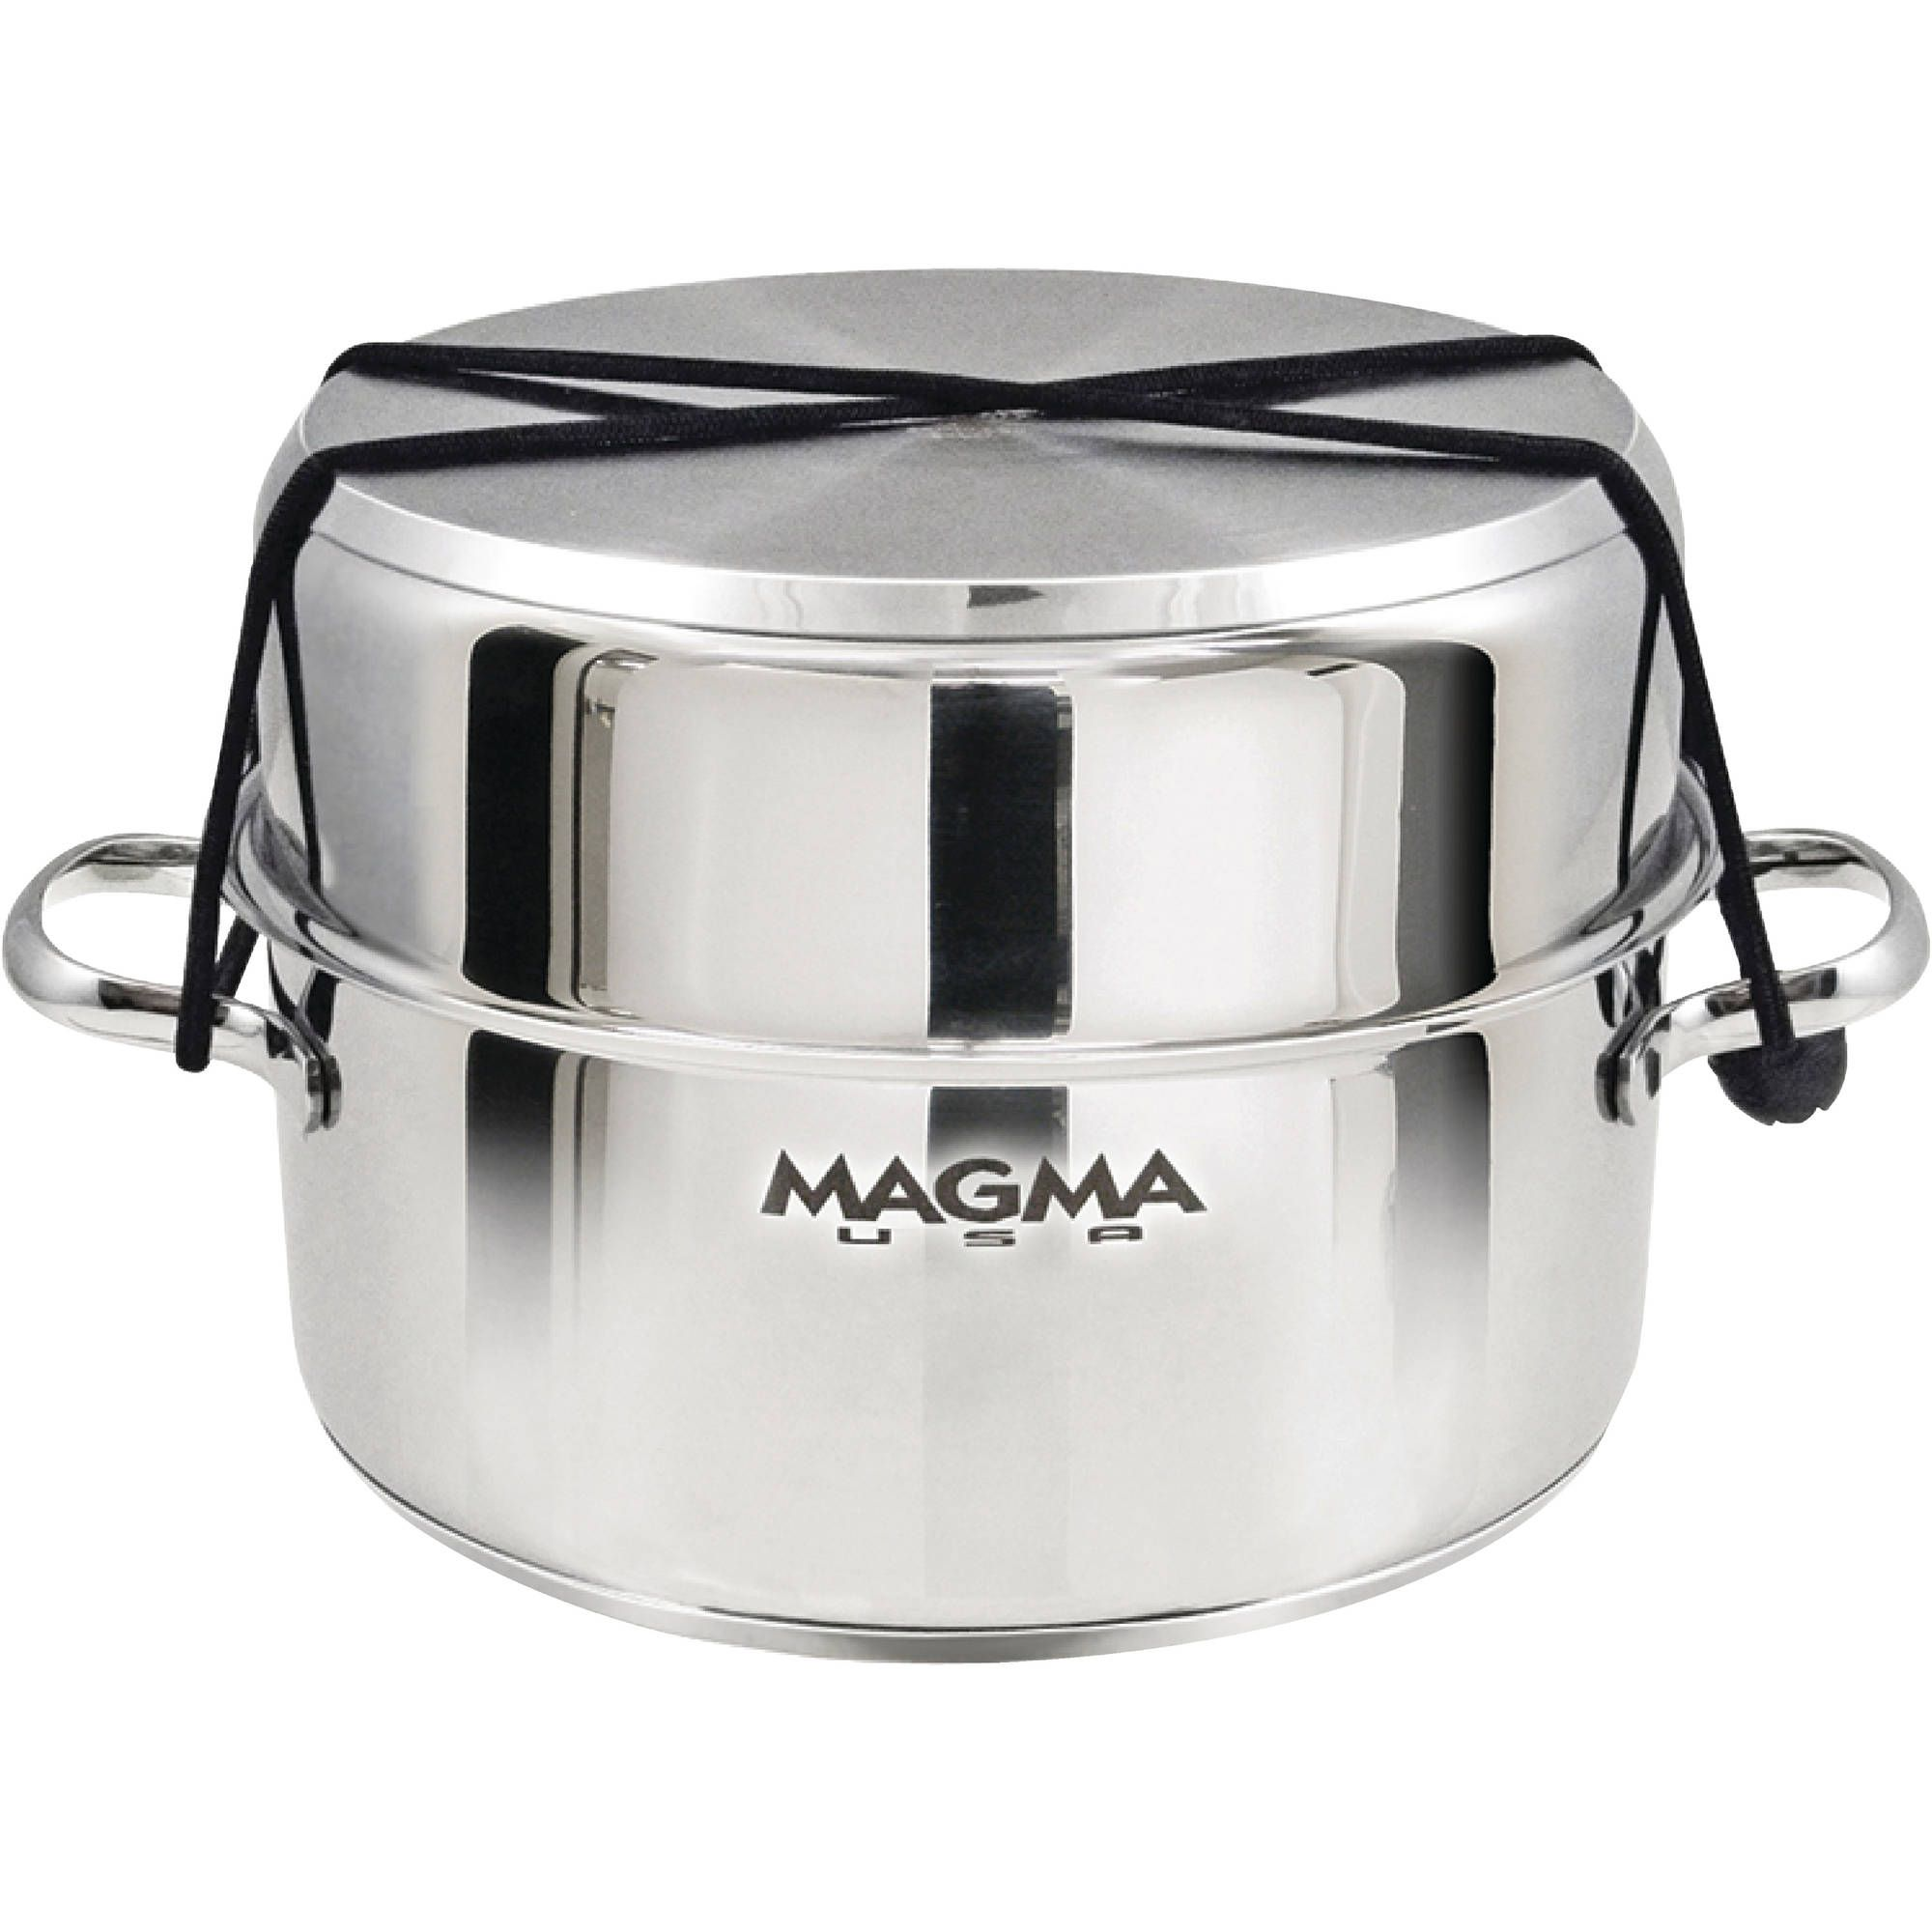 Stainless Magma Nesting 10-Piece Cookware Slate Black Ceramica Non-Stick